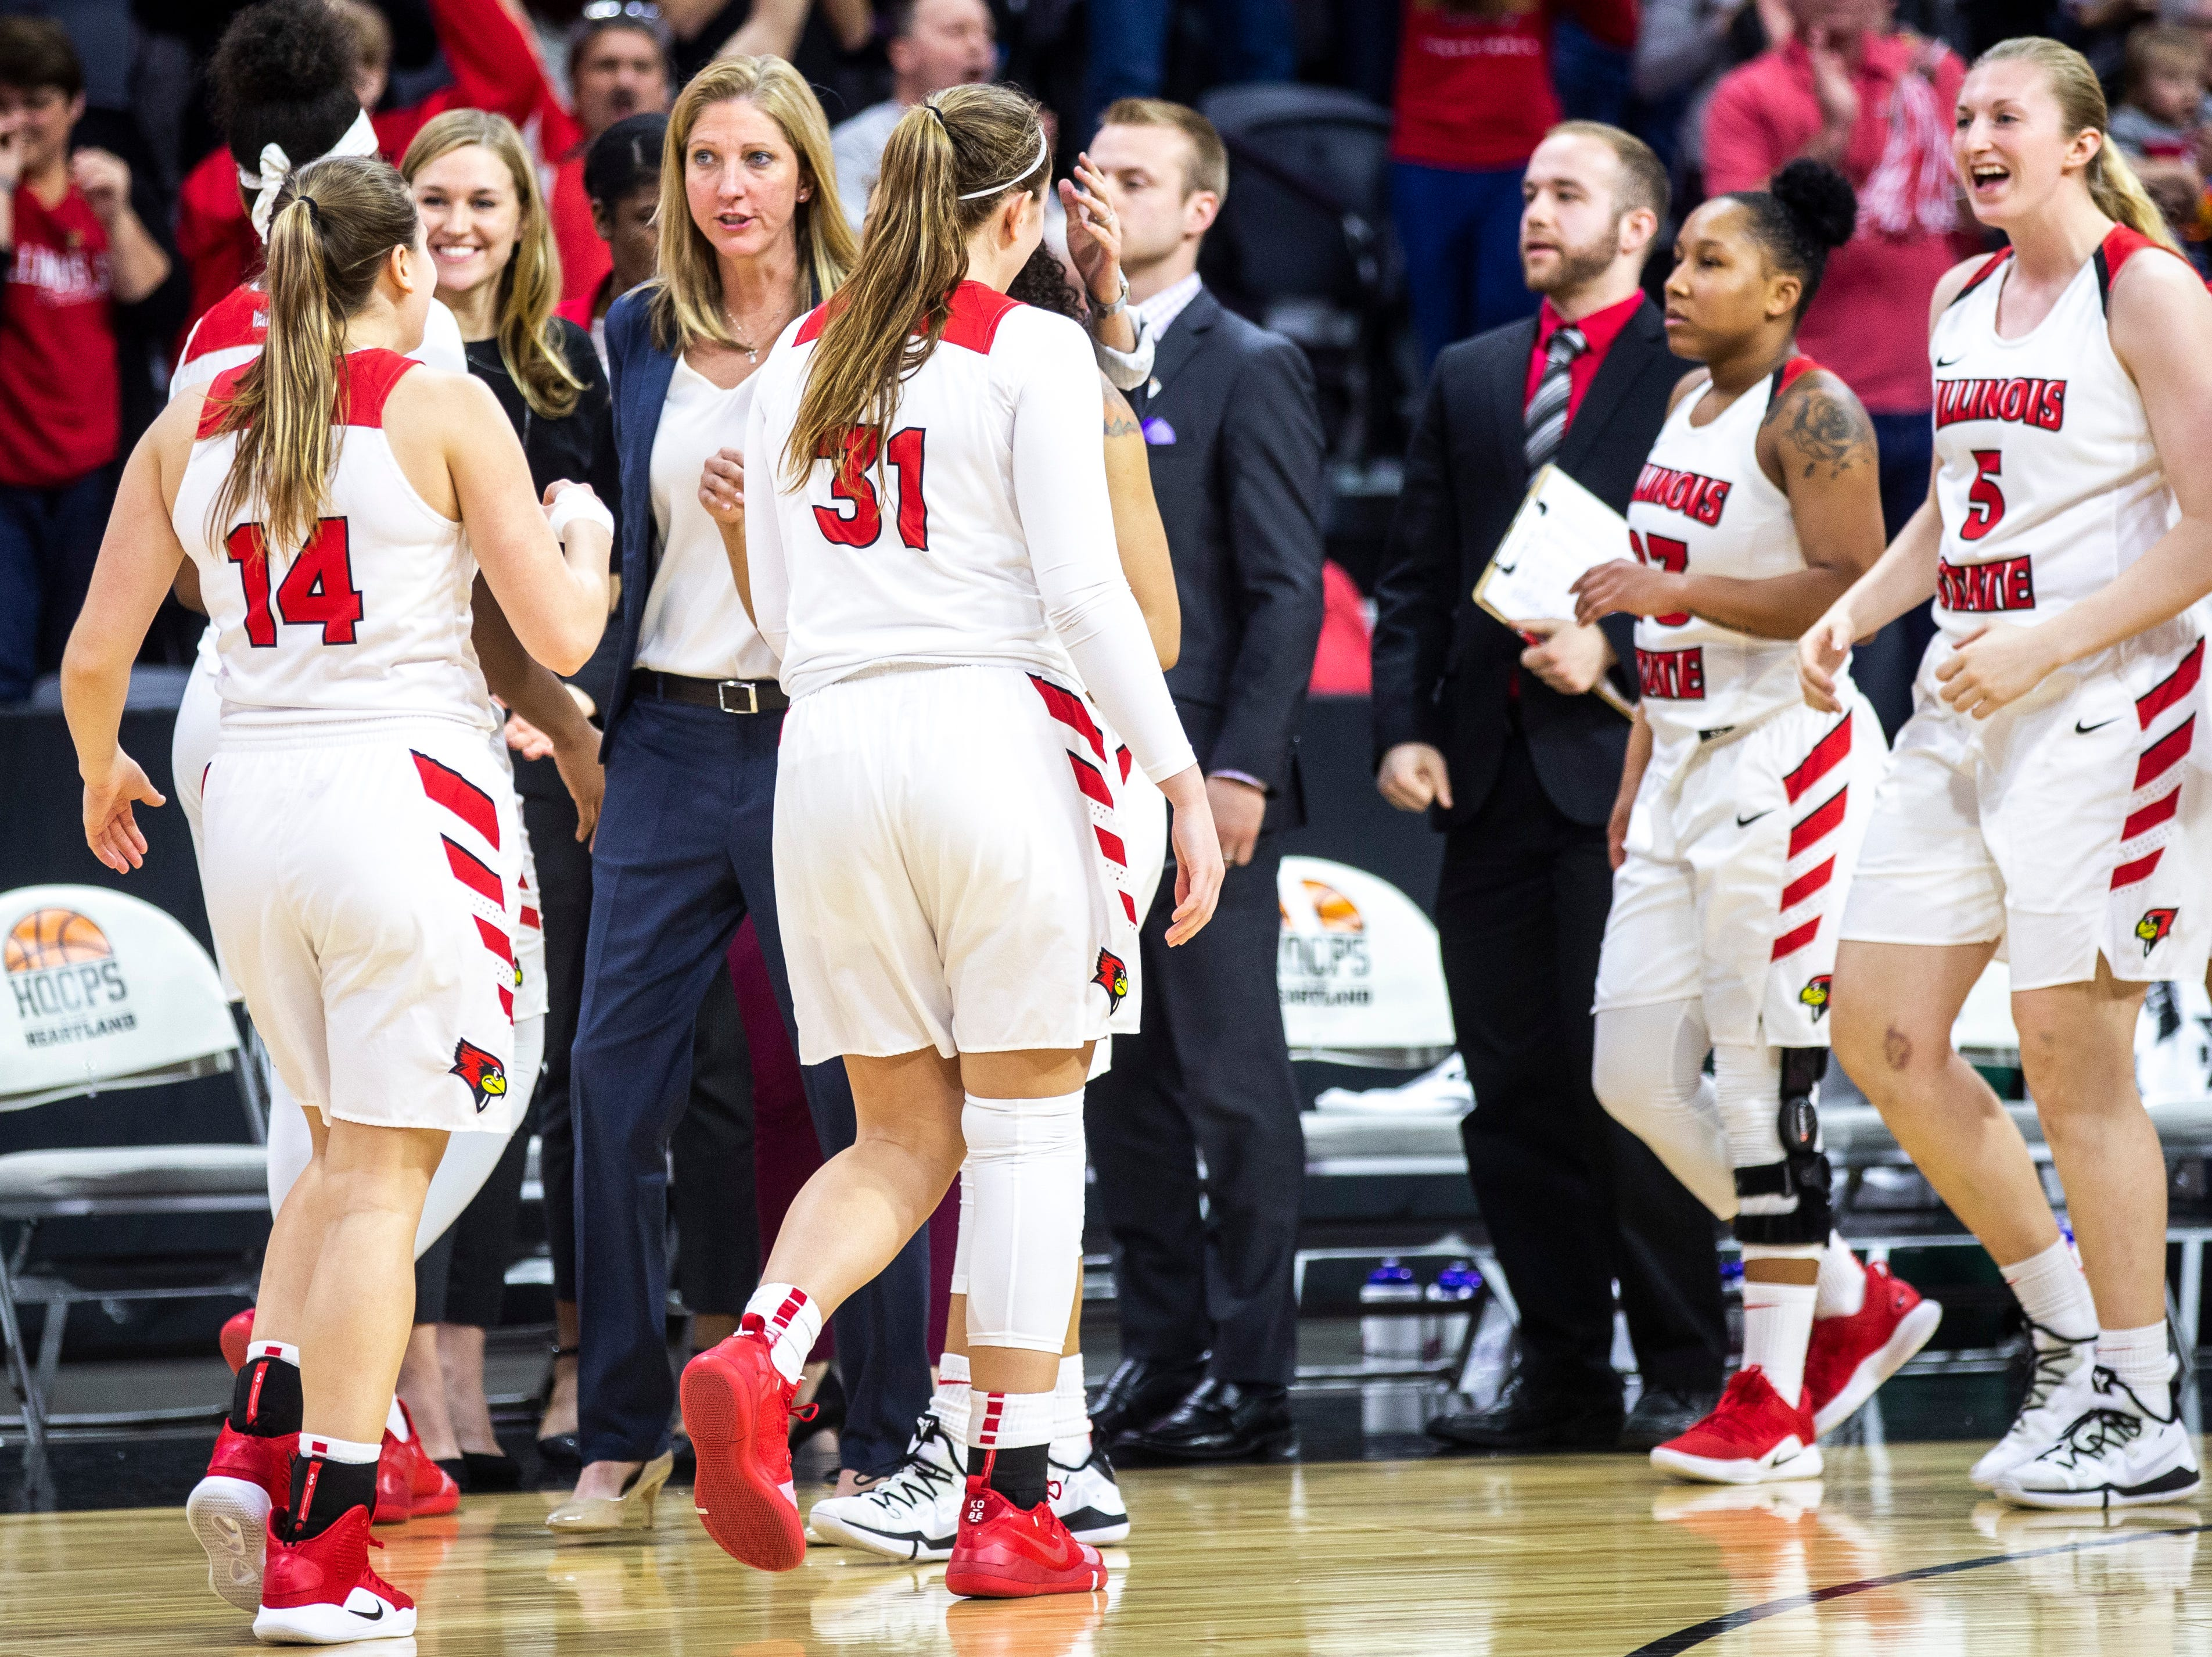 Illinois State head coach Kristen Gillespie celebrates with players after a NCAA Missouri Valley Conference women's basketball quarterfinal against Bradley tournament game, Friday, March 15, 2019, at the TaxSlayer Center in Moline, Illinois.